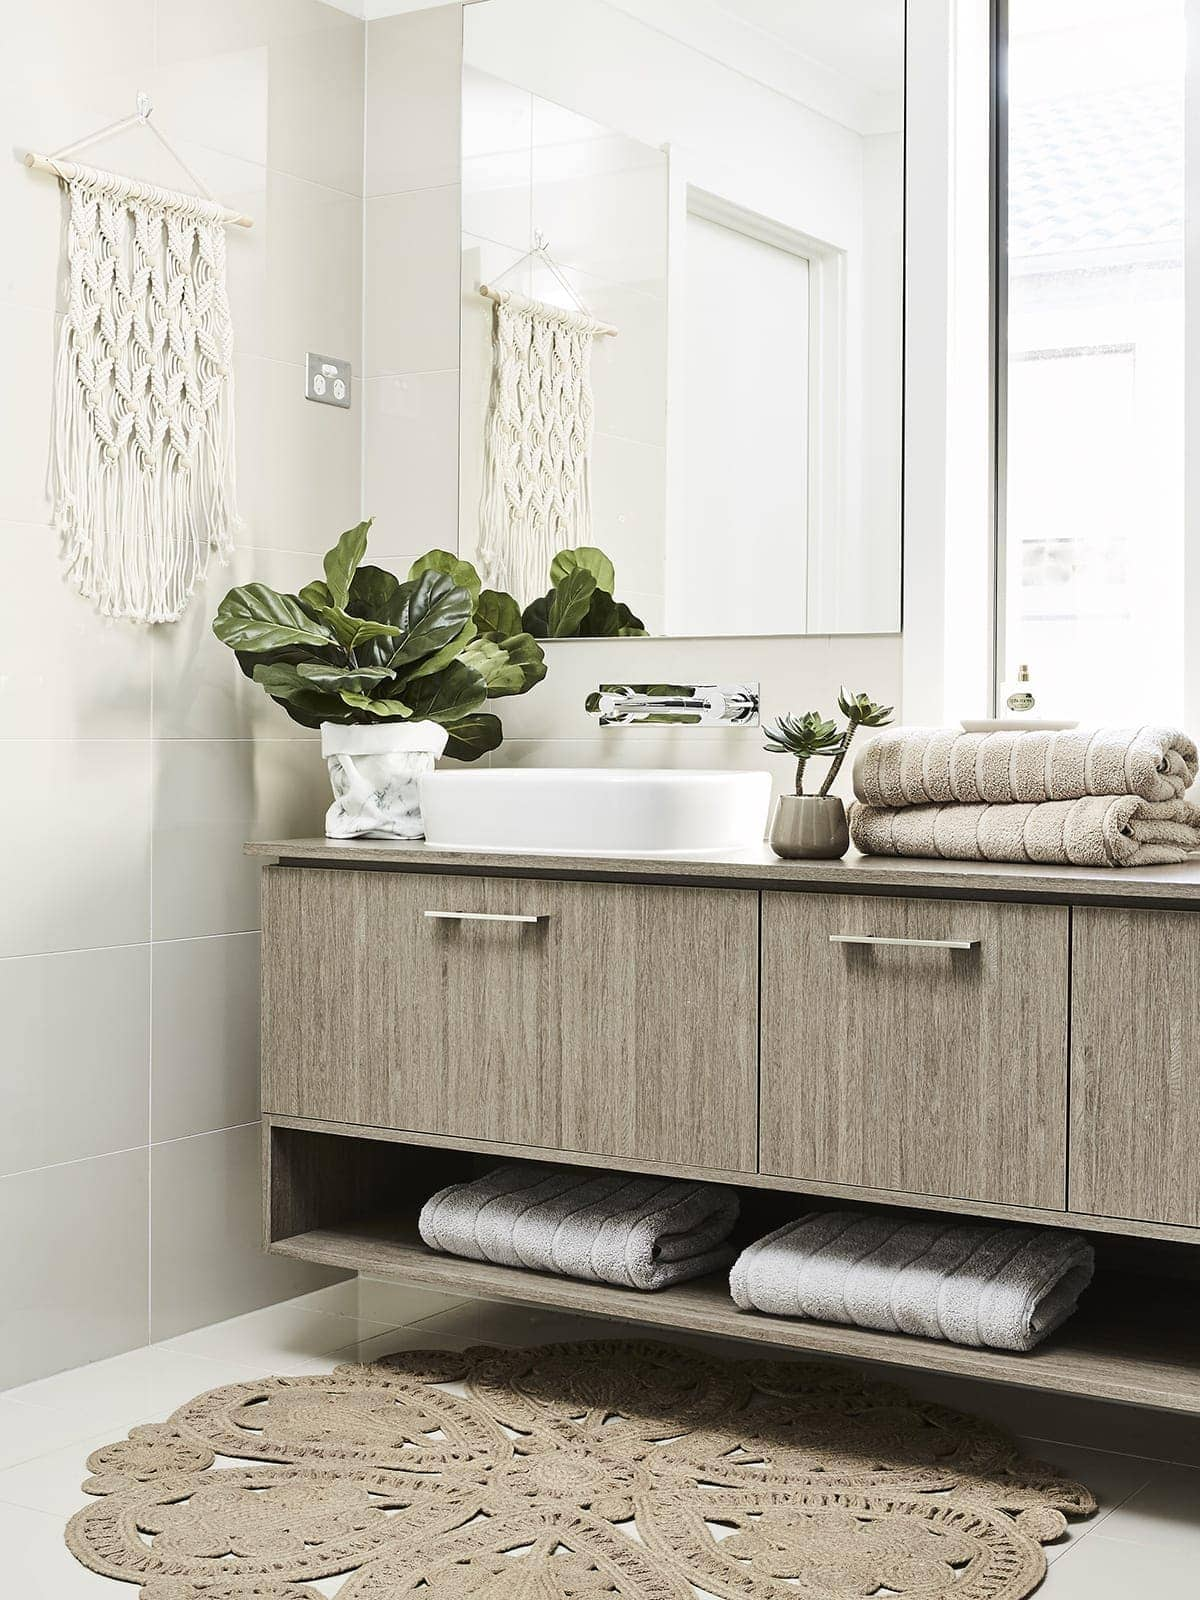 brown timber bathroom with round jute rug on floor and macrame wall hanging on bathroom wall